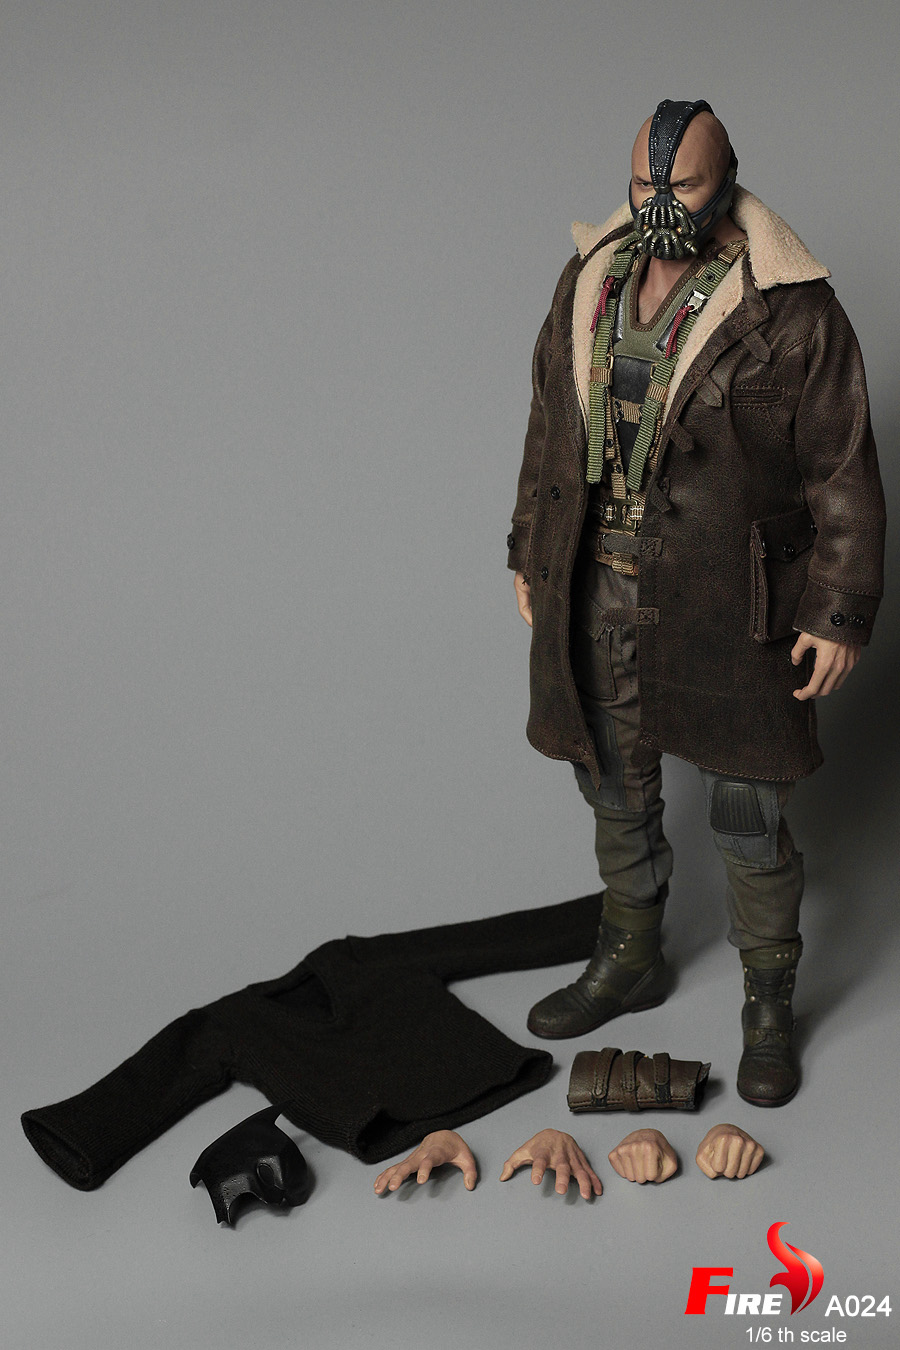 Pre-order 1//6 Scale Fire A024 Bane Action Figure